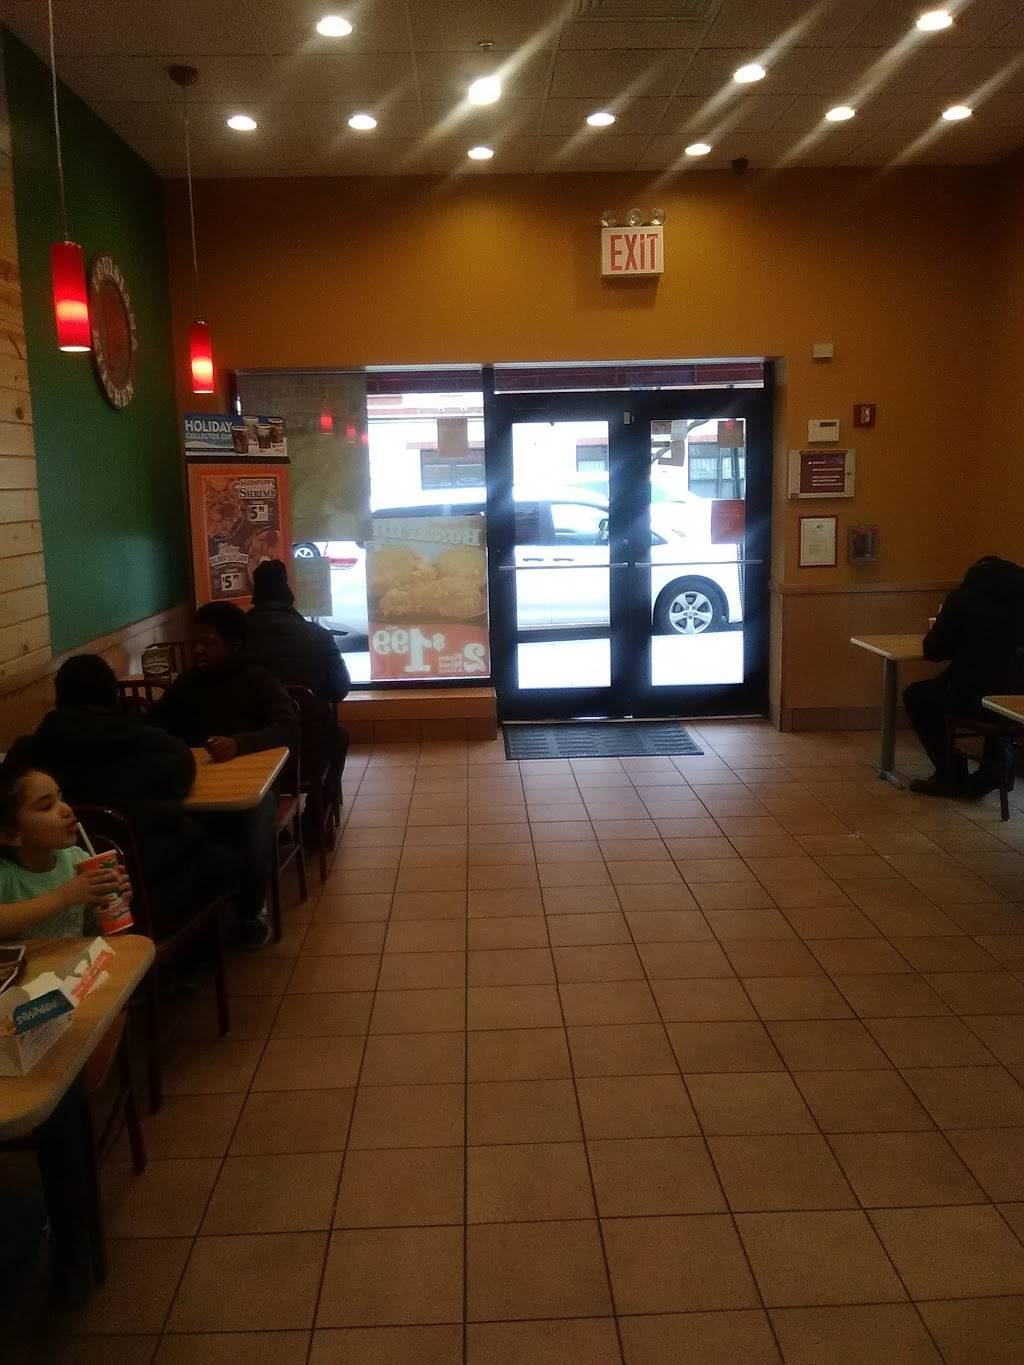 Popeyes Louisiana Kitchen | restaurant | 949 E 174th St, Bronx, NY 10460, USA | 7185427147 OR +1 718-542-7147